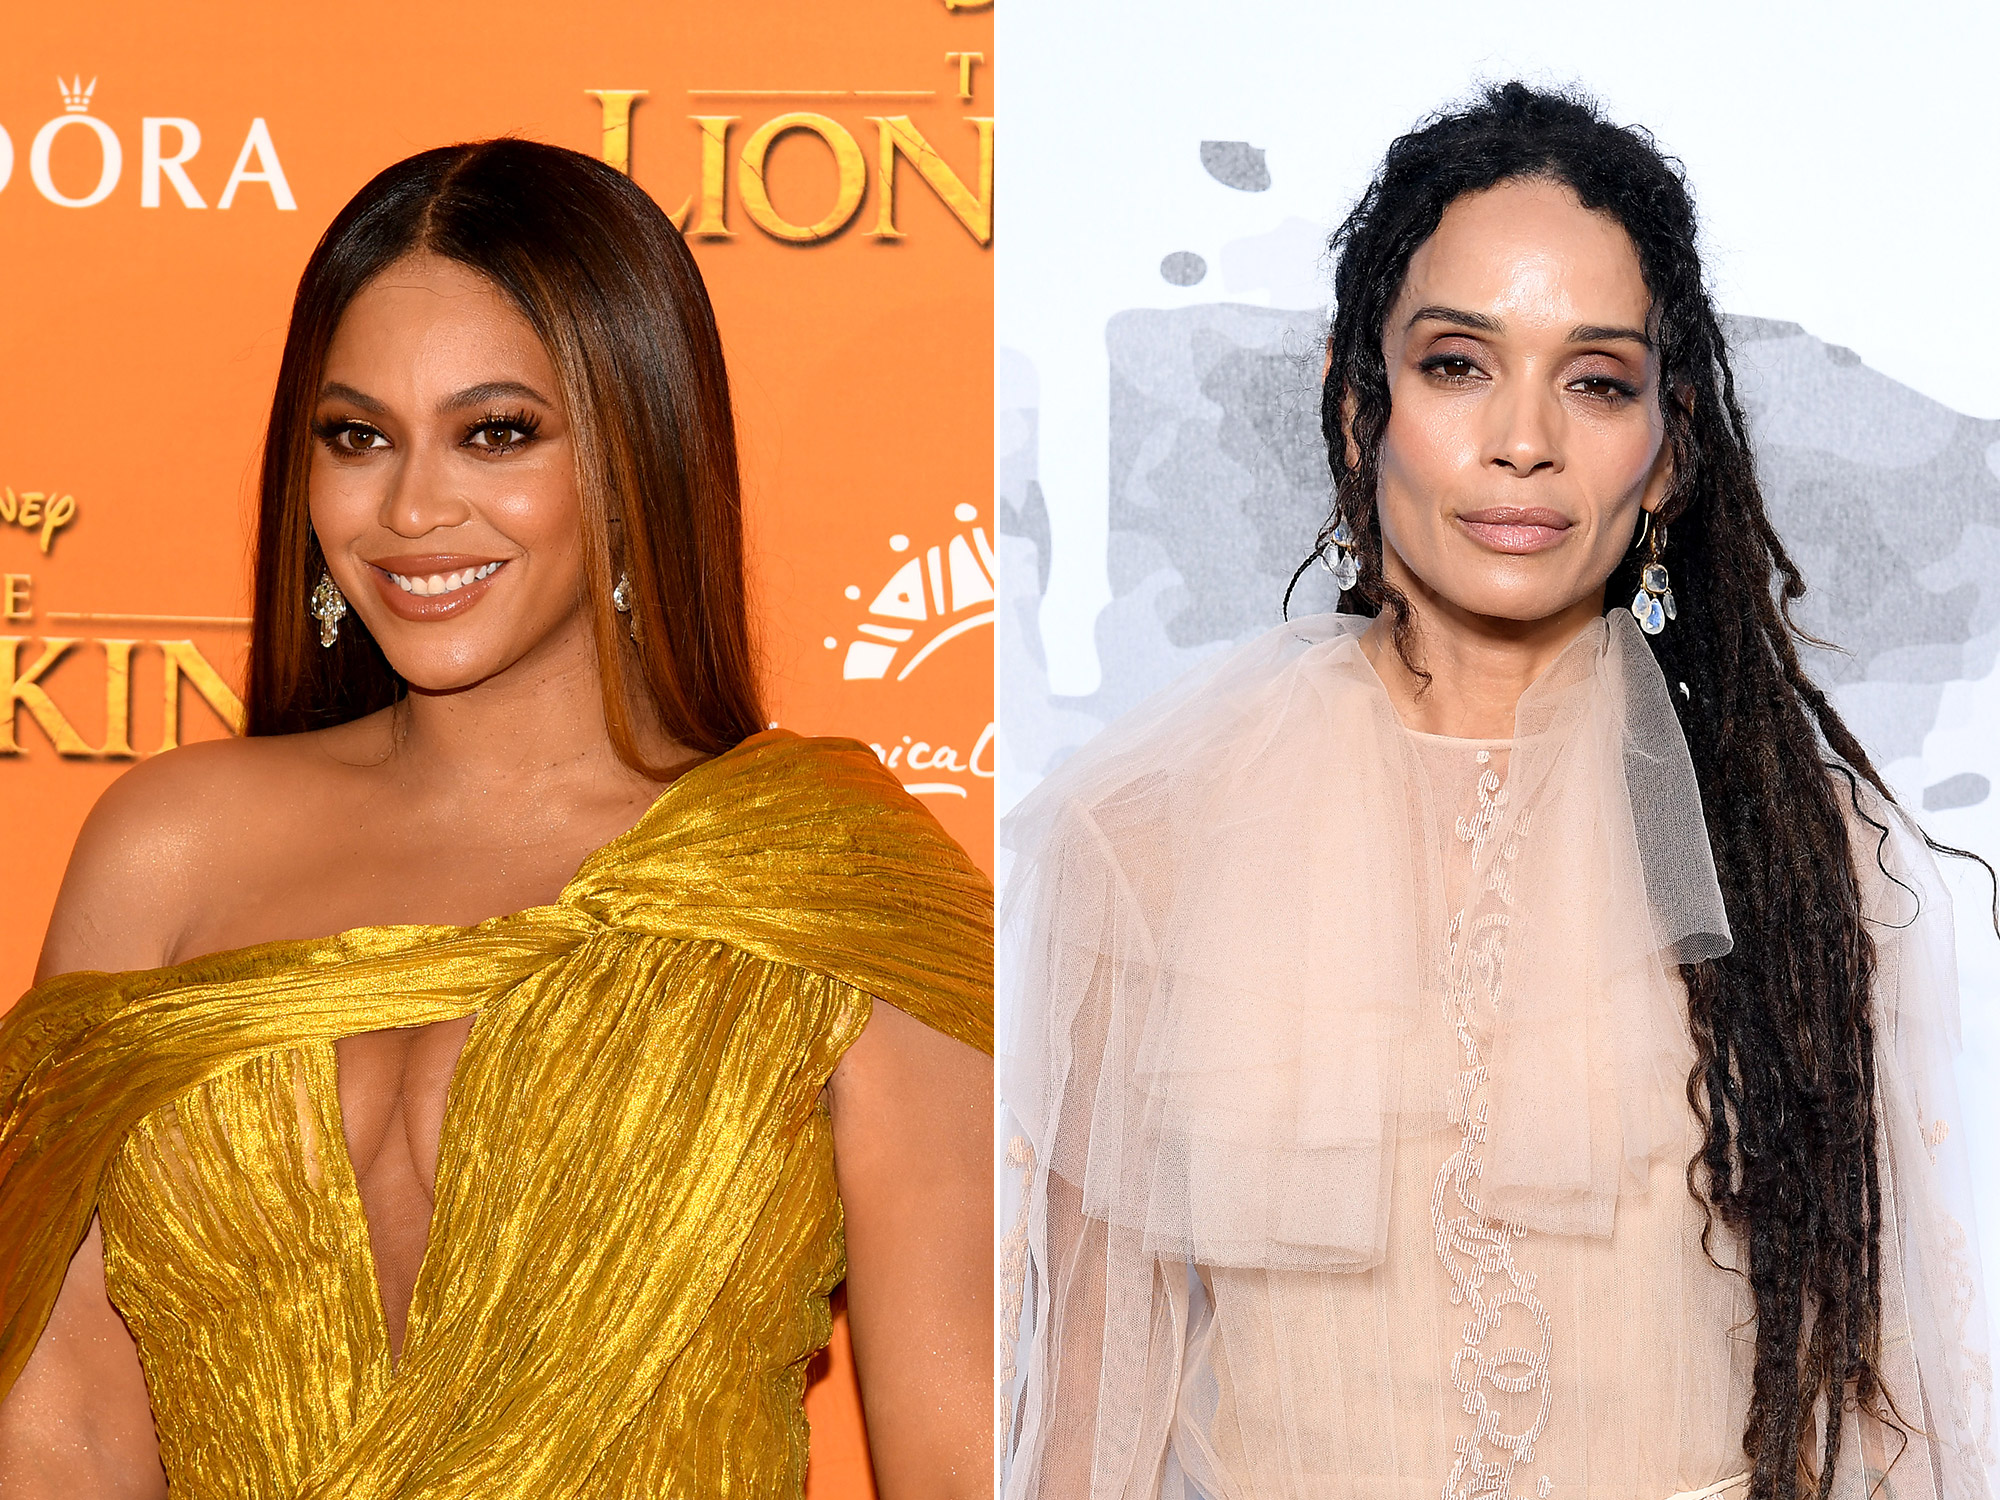 Beyoncé Is Unrecognizable Dressed as Lisa Bonet in These Never-Before-Seen Halloween Photos